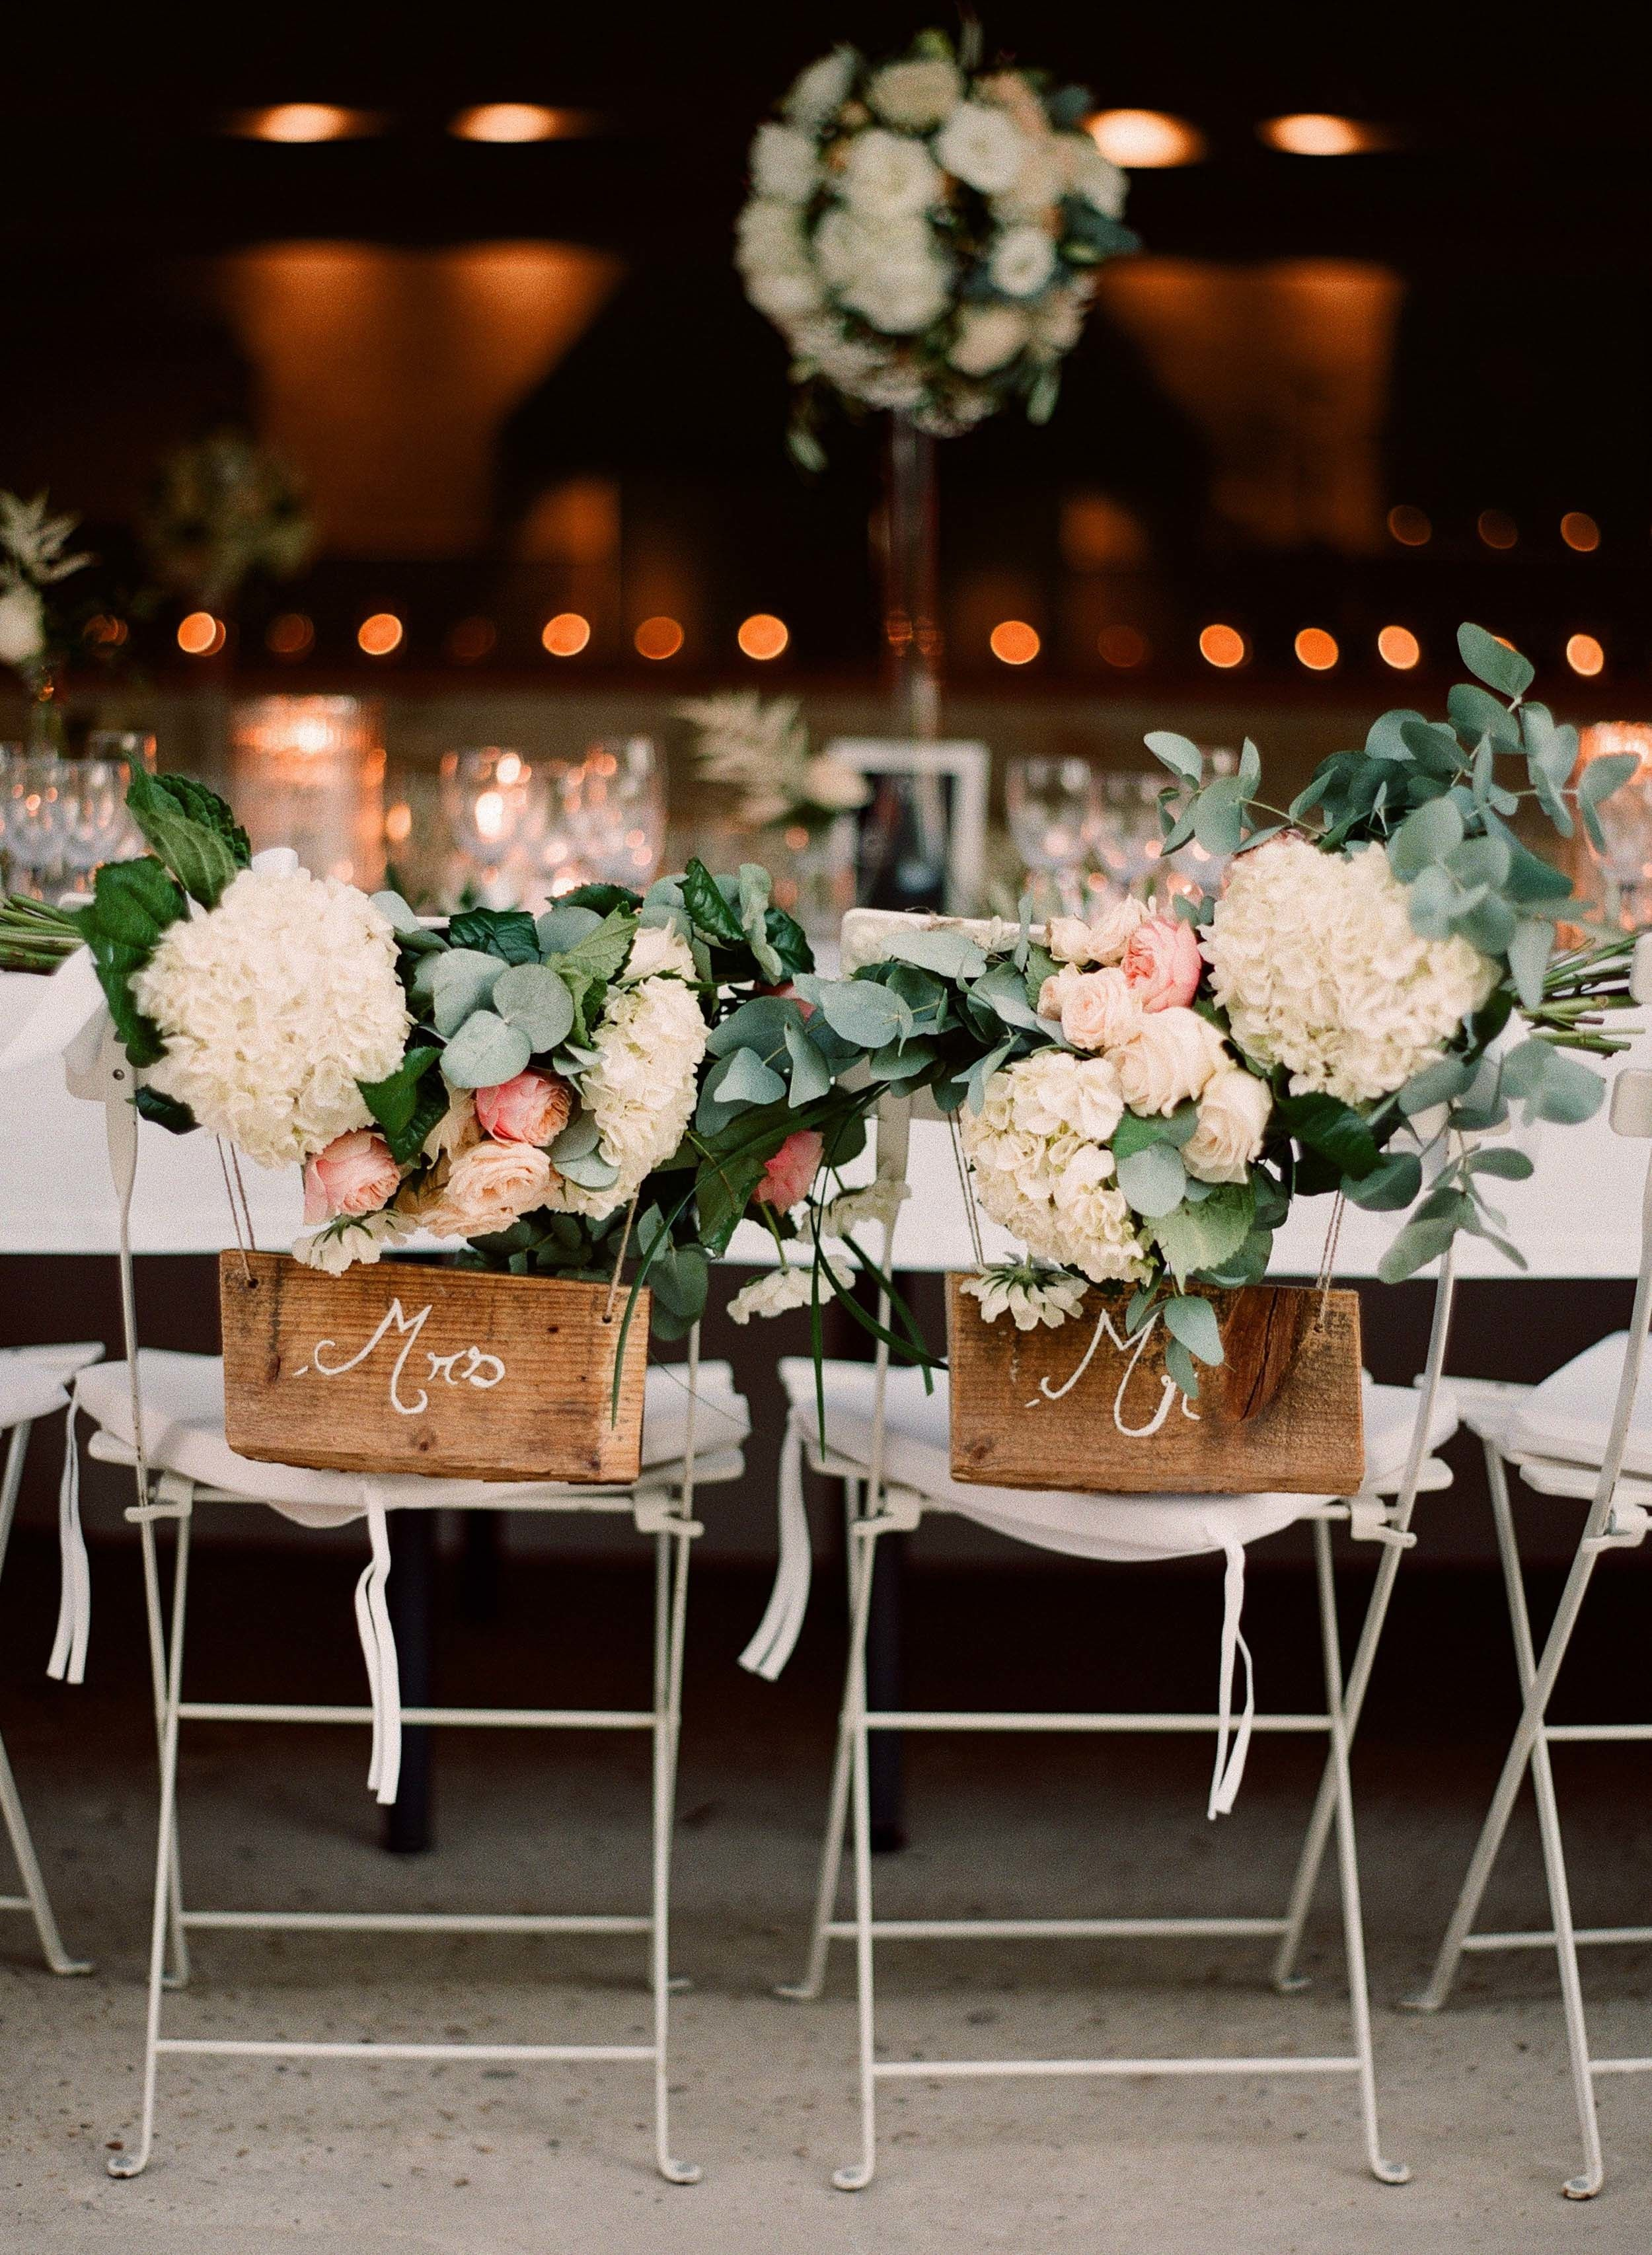 Wedding flower decoration images  Rustic Charm in the South of France  Rustic charm Destination